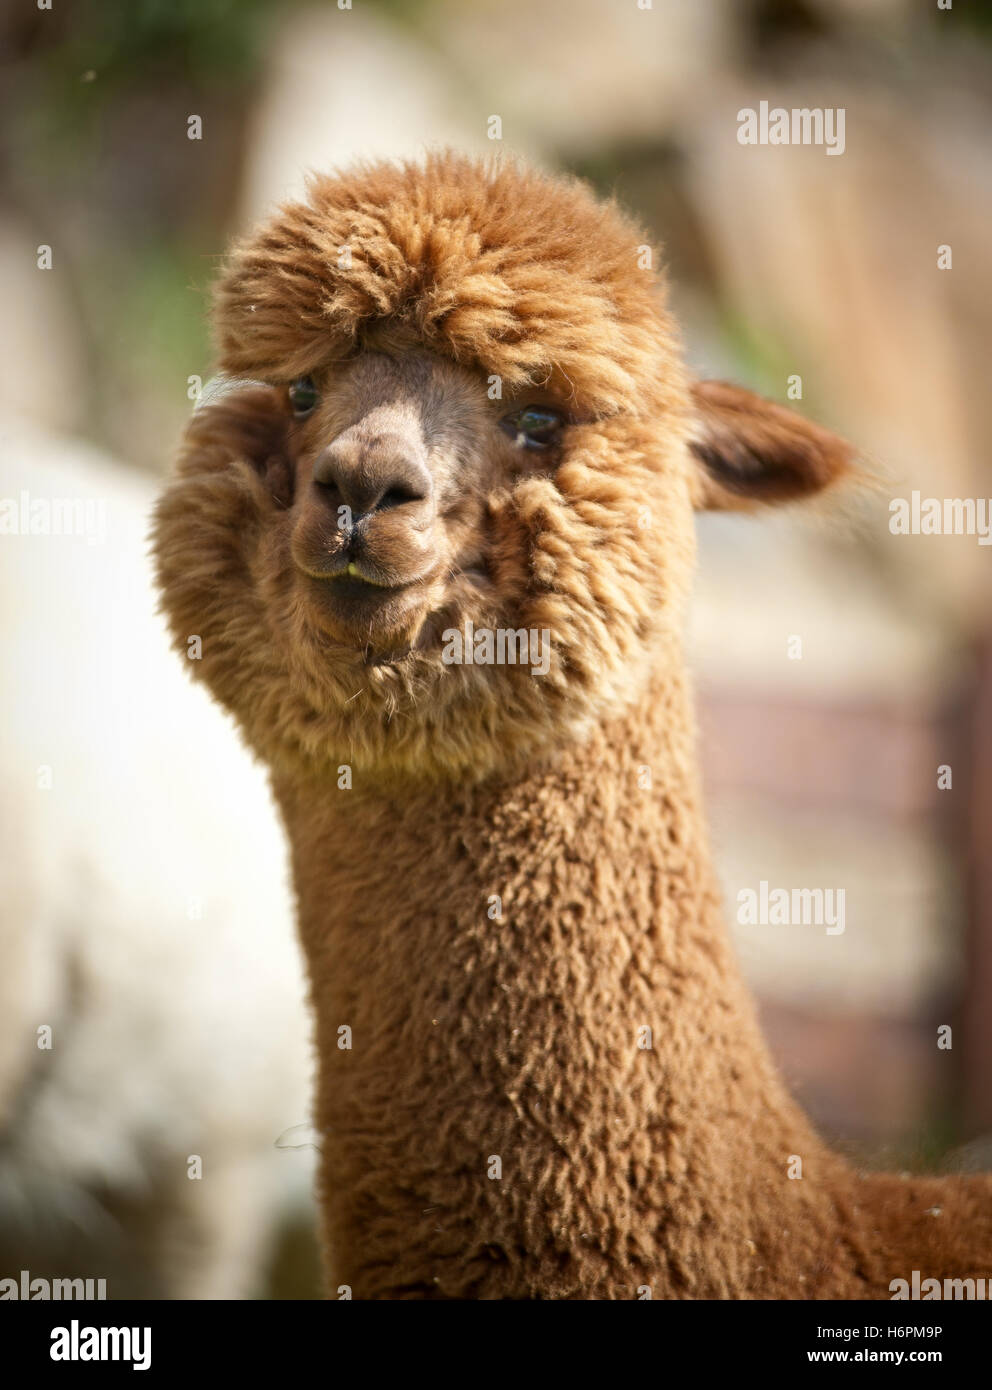 close single brown brownish brunette one alpaca fluffy head detail spare time free time leisure leisure time colour - Stock Image